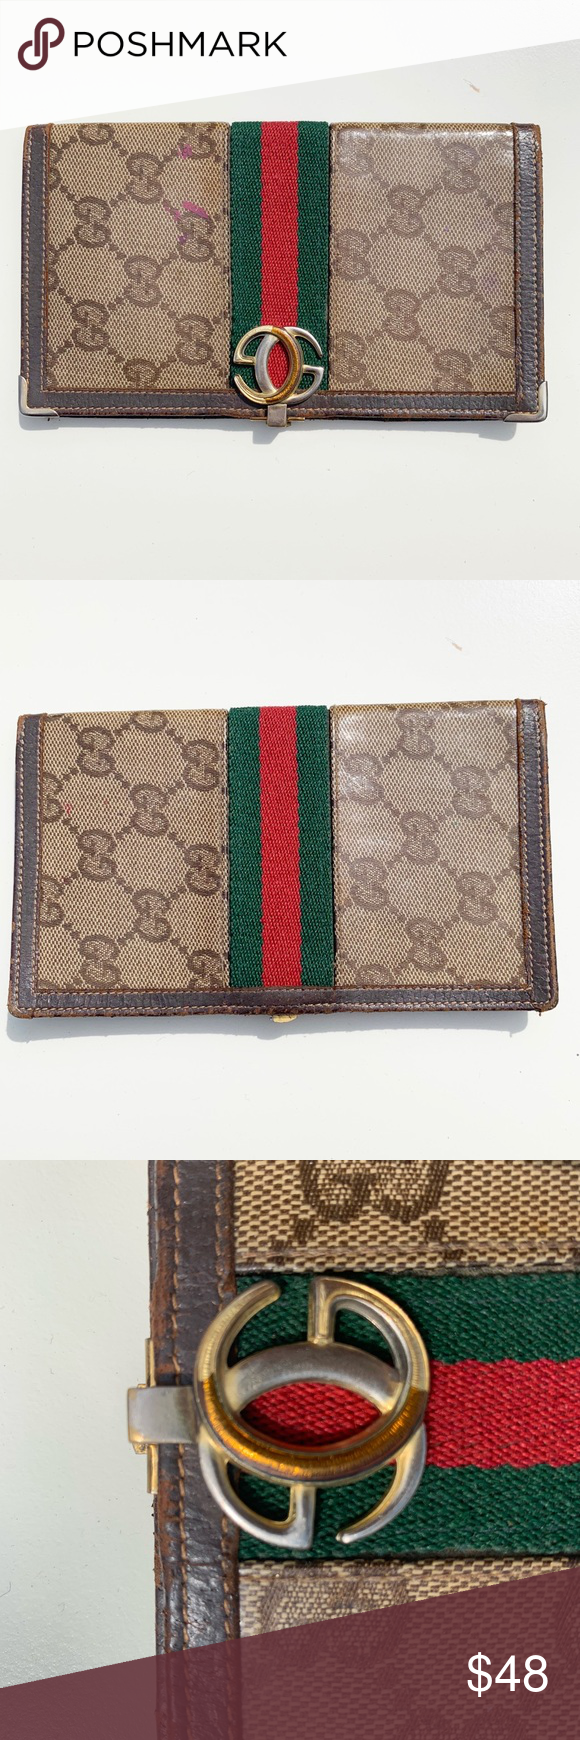 610a2168f00f Gucci | Vintage Checkbook Cover Wallet GG Coated Authentic Vintage Gucci  Coated GG Canvas Checkbook Cover